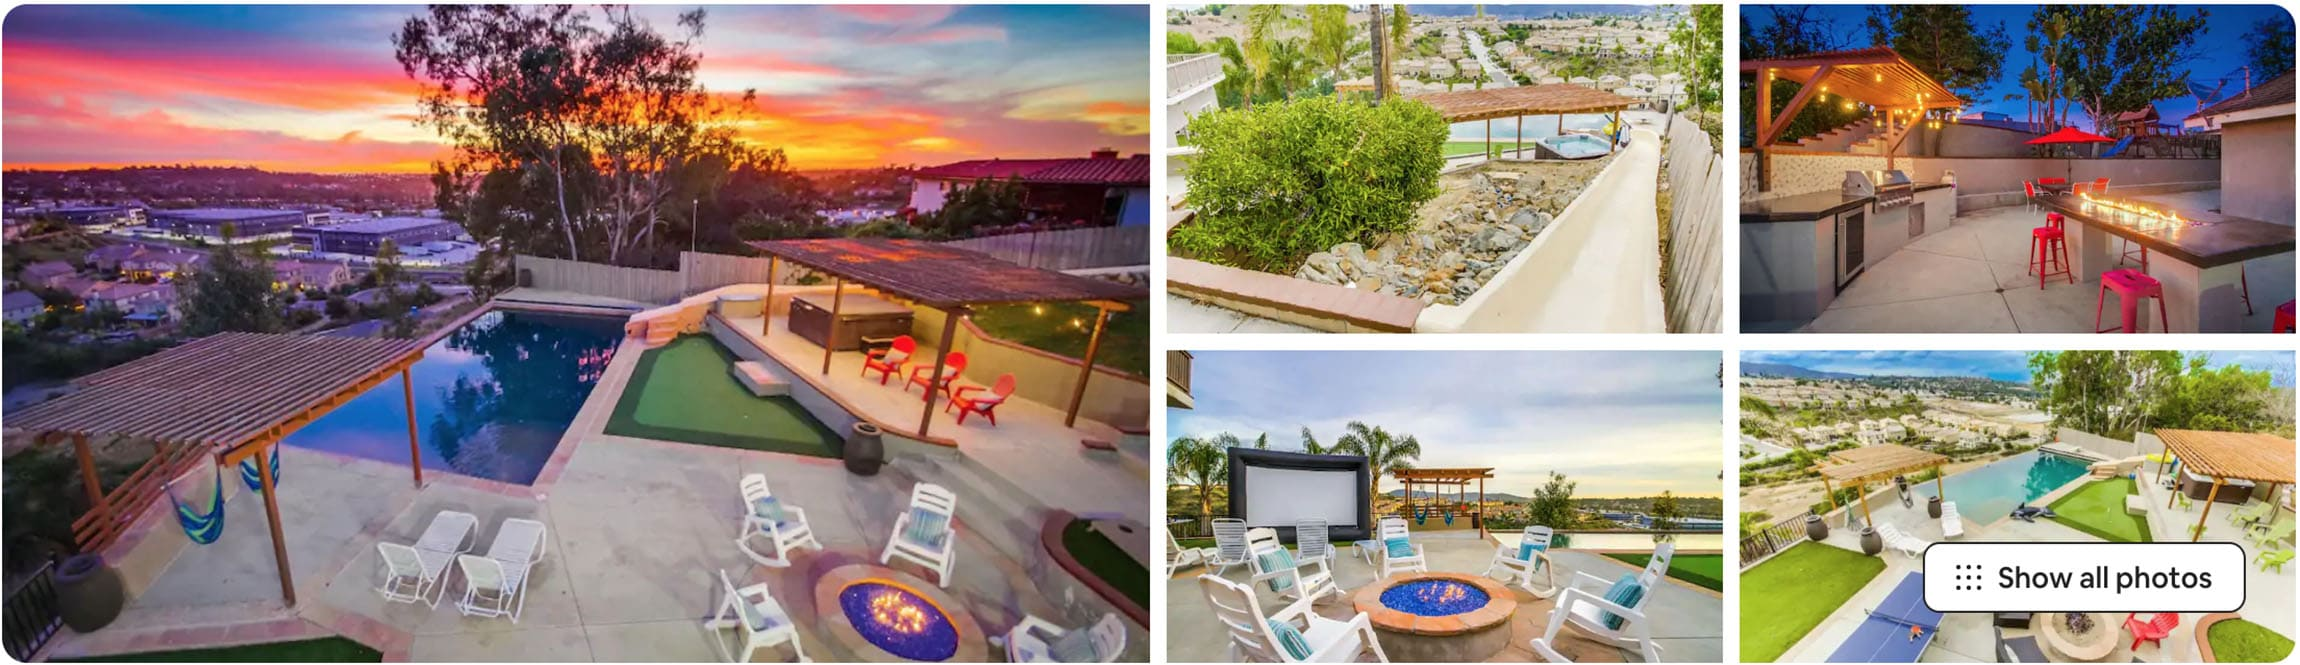 Vista pool home - airbnb wedding venues in southern california